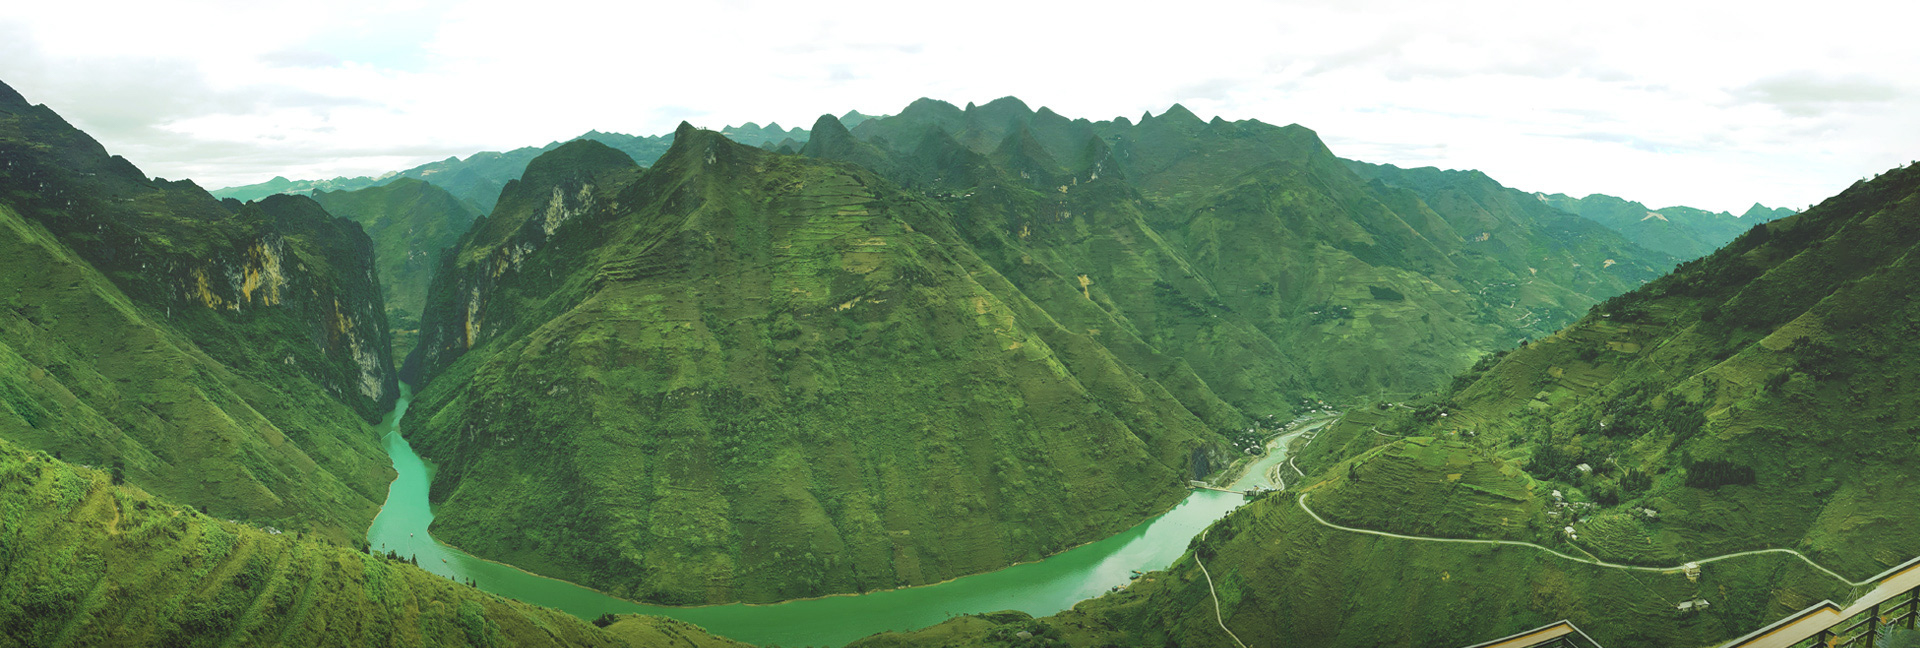 Nho Que River as seen from atop Ma Pi Leng Peak in Ha Giang Province, Vietnam.